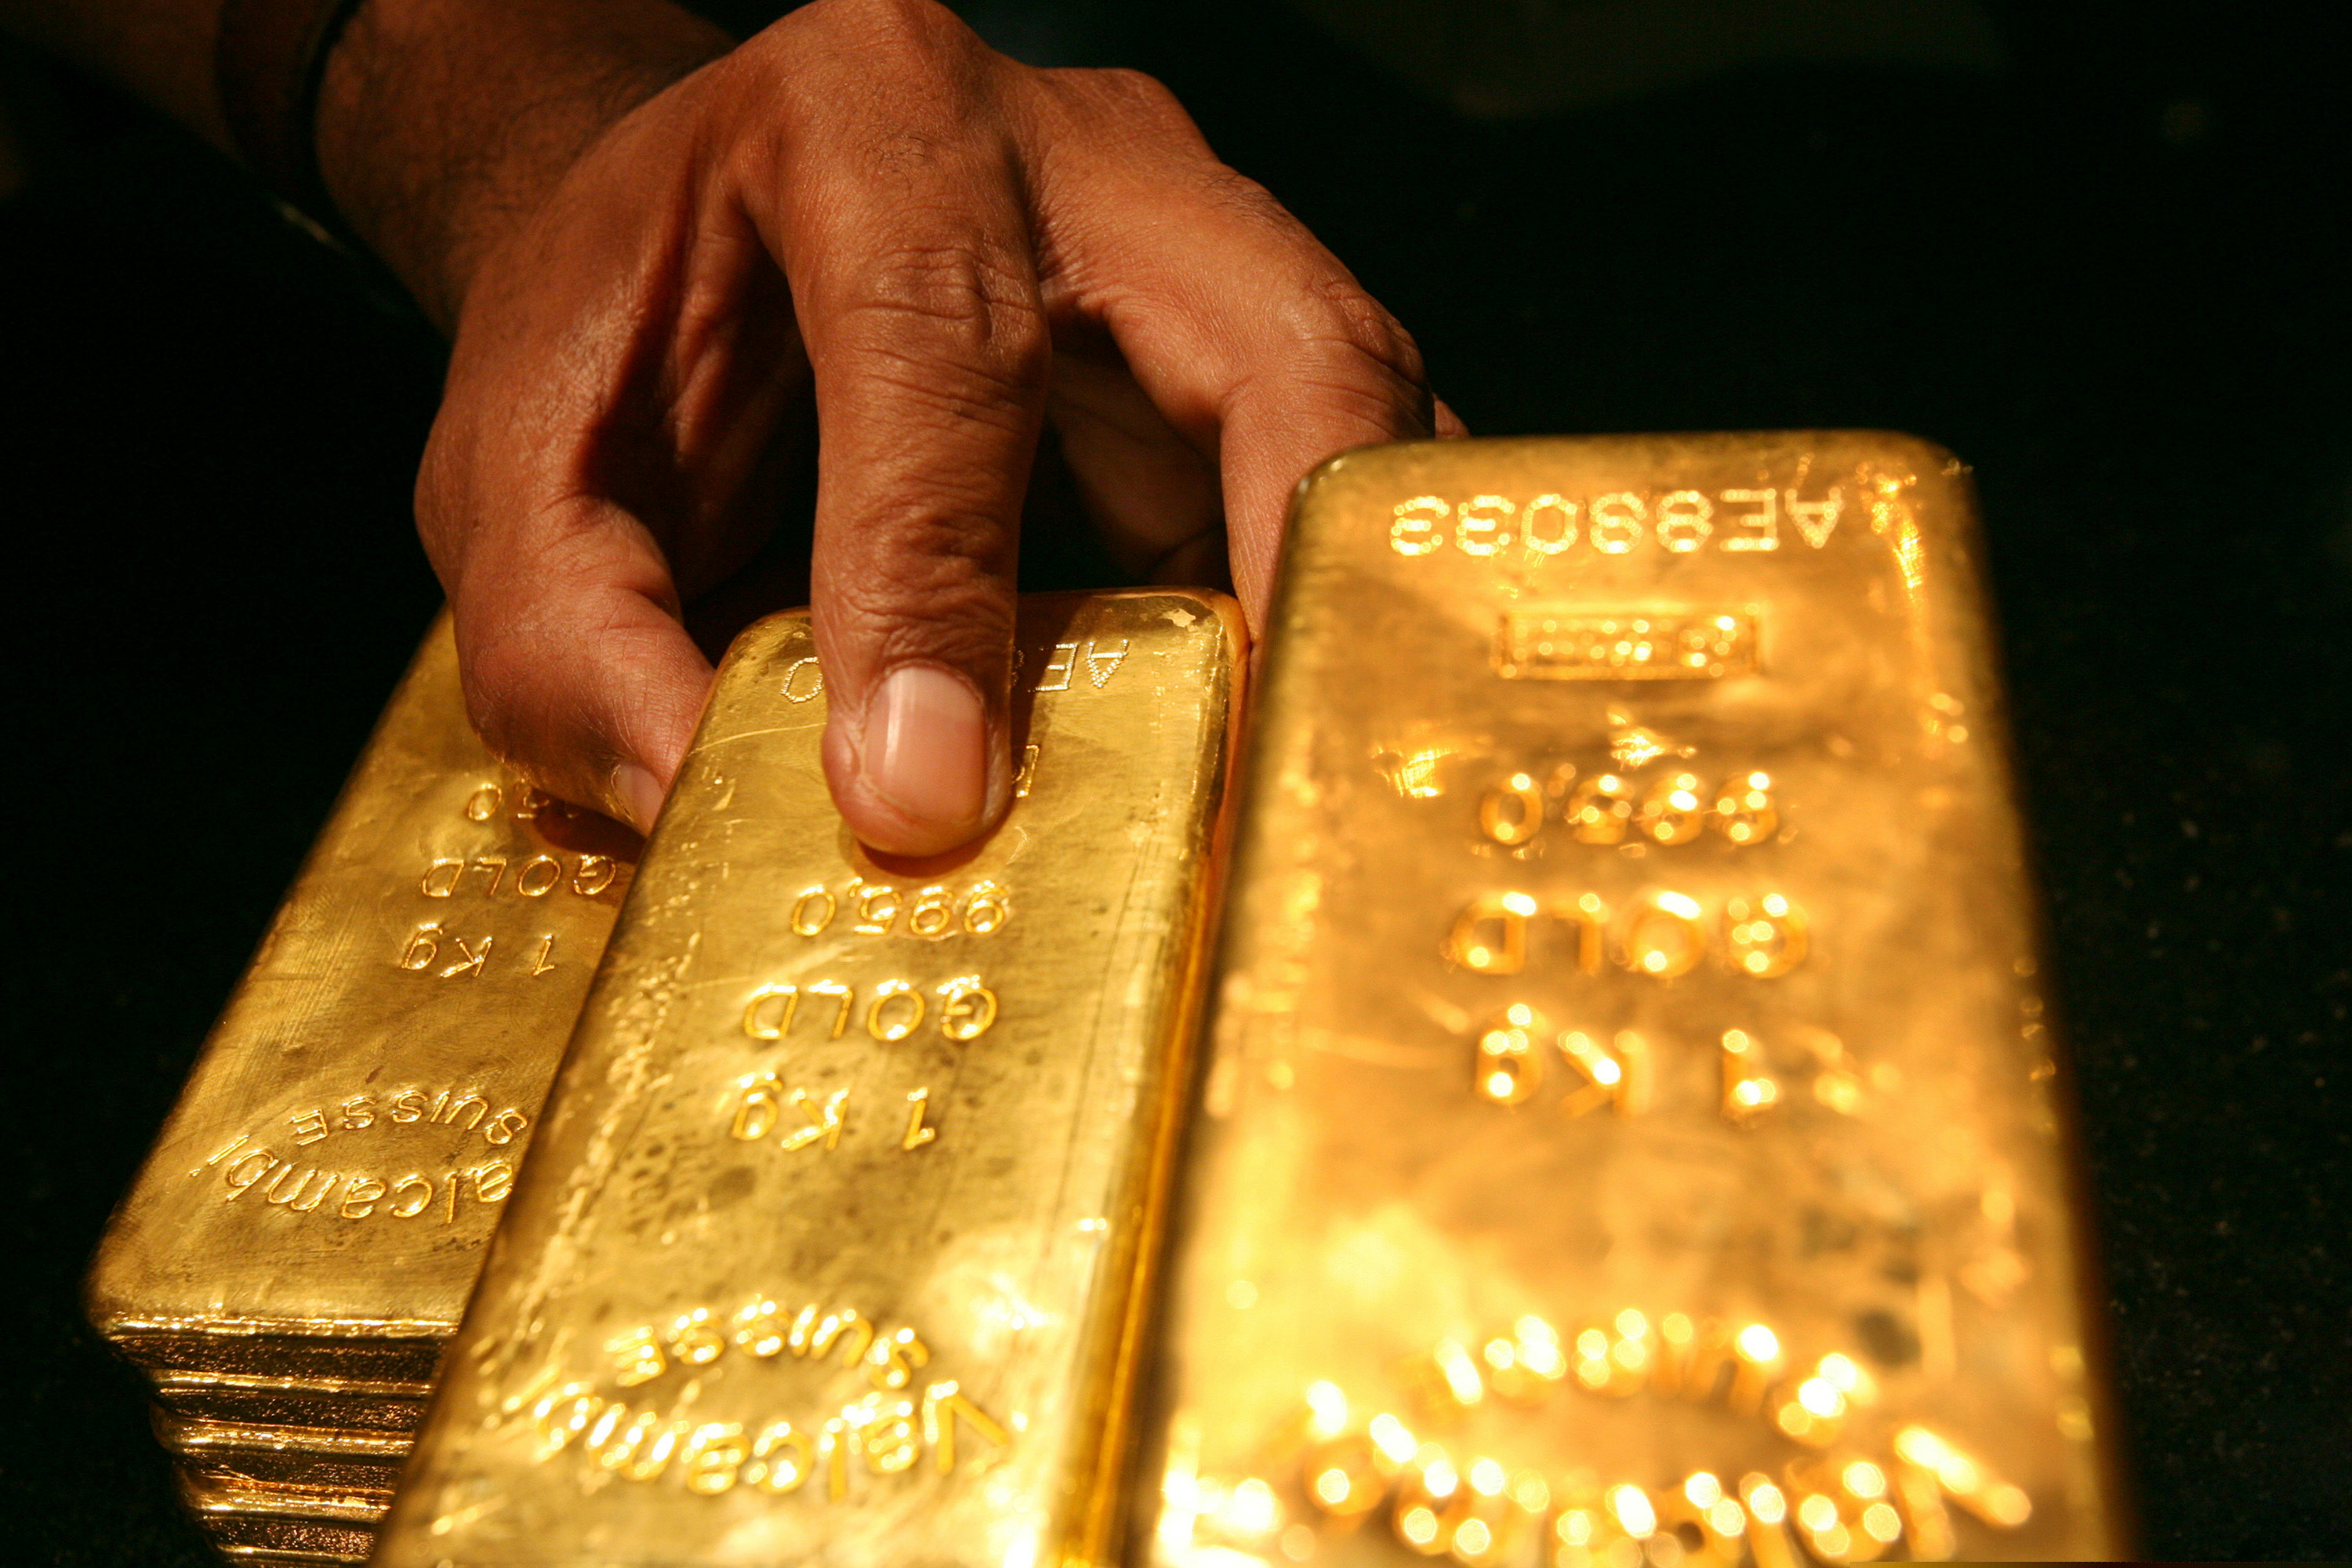 A security guard places several one kilo gold bars inside a secured vault in Dubai April 20, 2006.